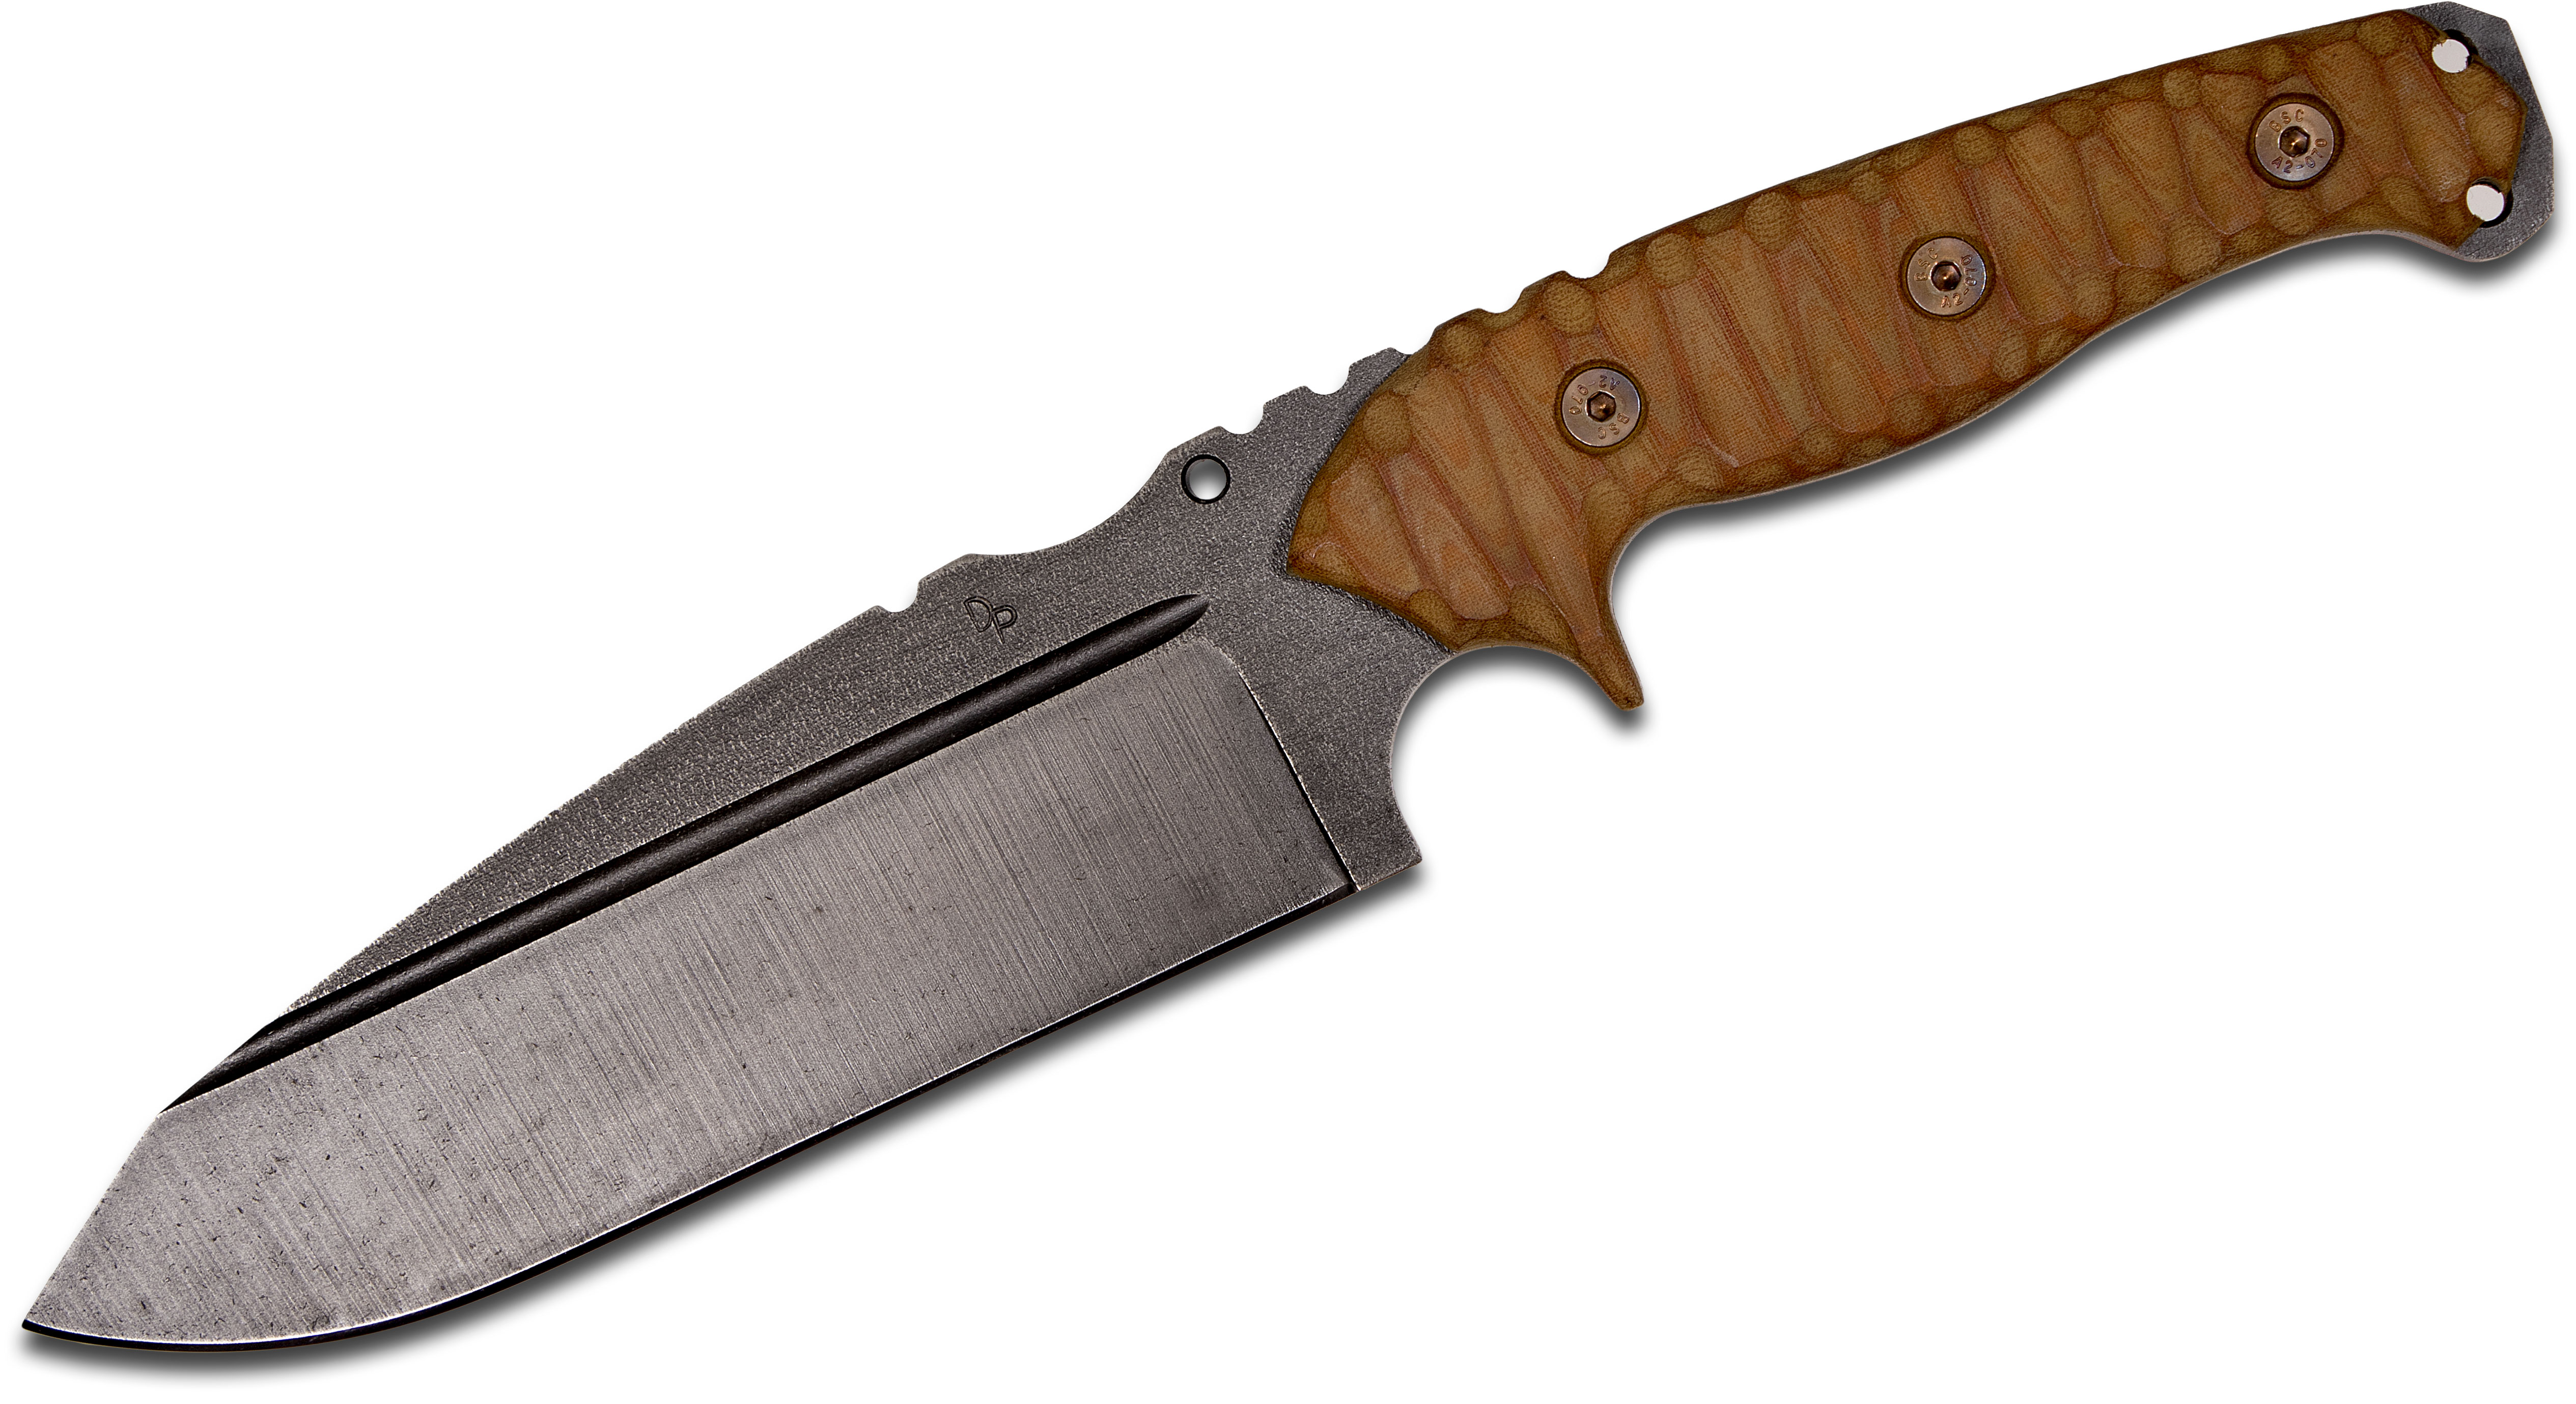 Wander Tactical Smilodon Fixed 7.1 inch Raw D2 Blade, Desert Brown Micarta Handles, Thermo-Molded Polymer Sheath